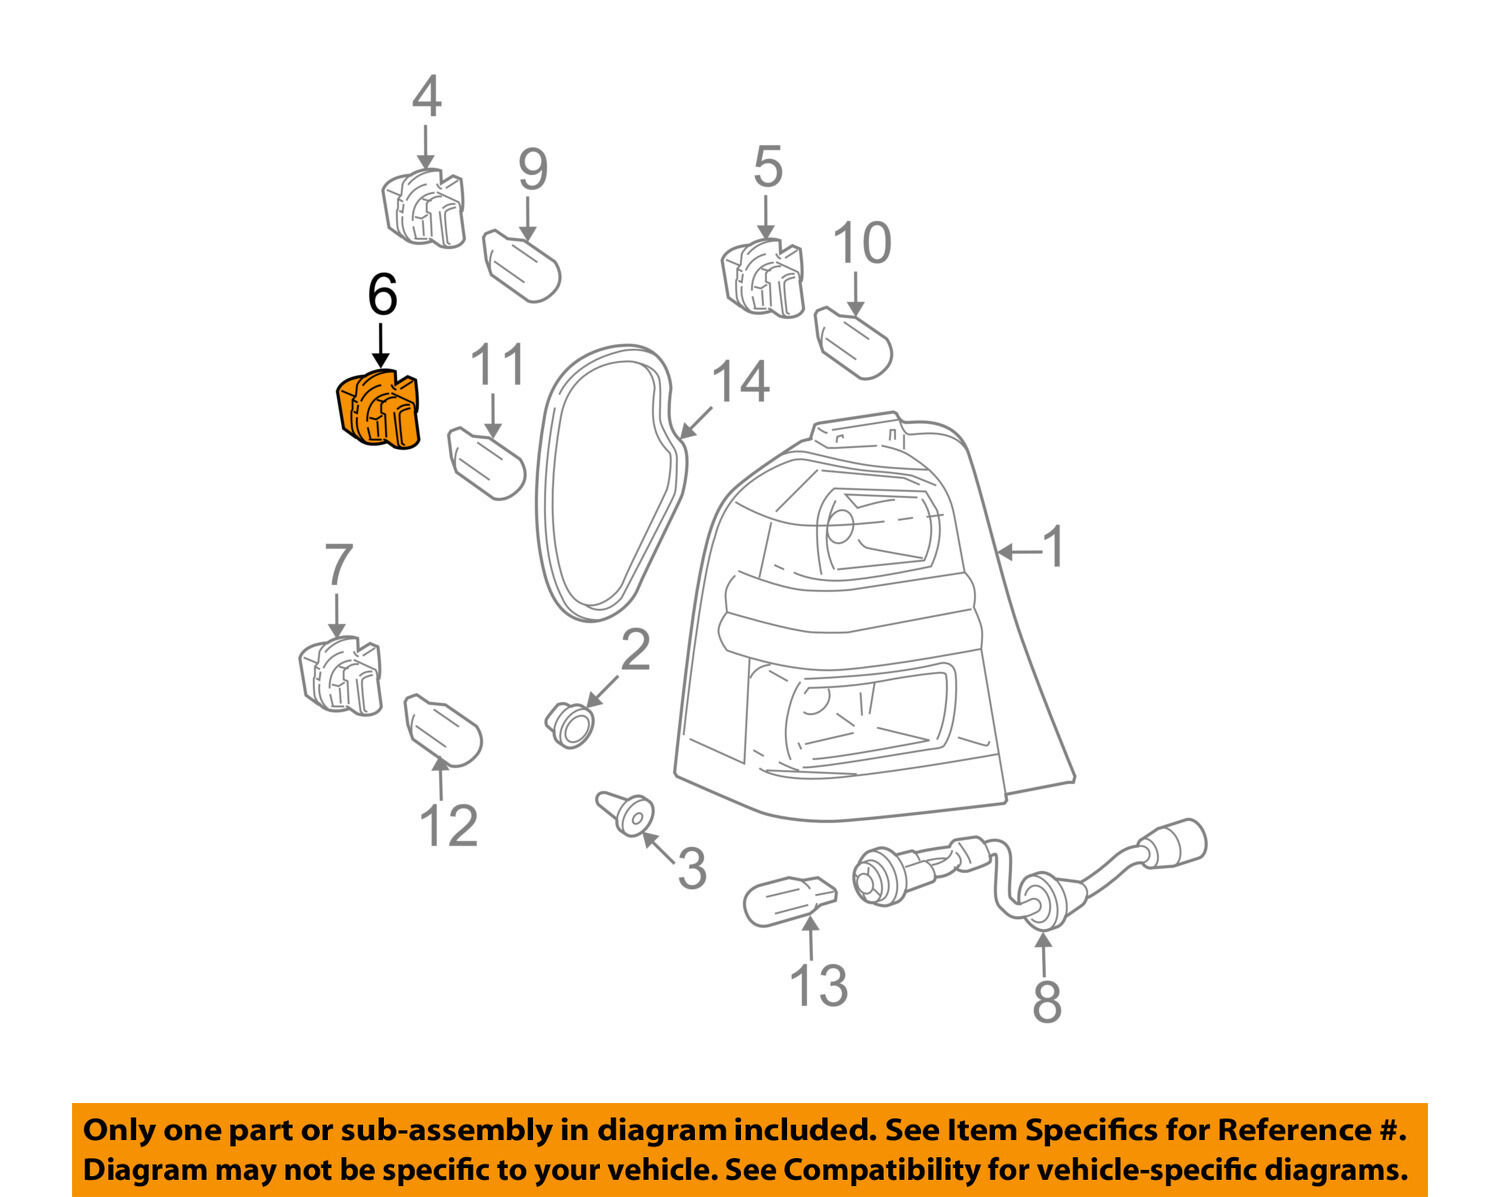 Toyota Oem 01 07 Highlander Taillight Tail Light Lamp Rear Socket Wiring Schematic 9007560034 1 Of 2only 5 Available